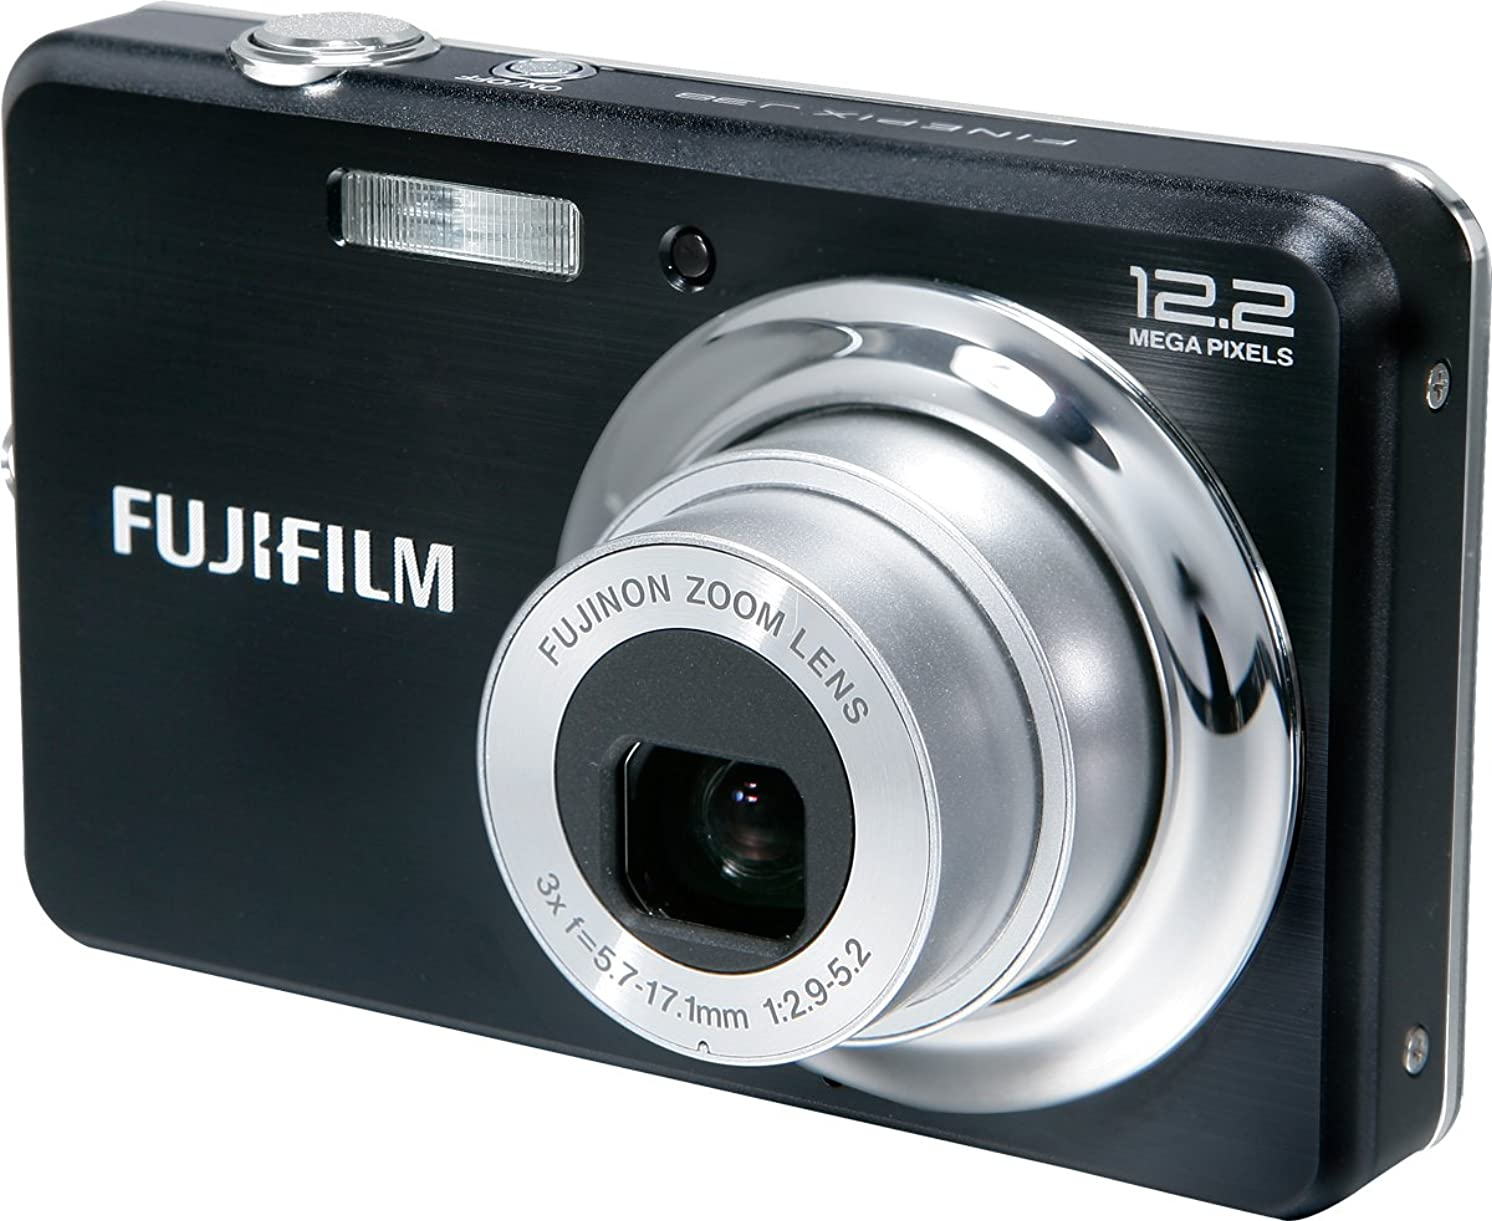 Fujifilm Finepix J38 12MP Digital Camera with 3x Optical Zoom and 2.7 inch LCD